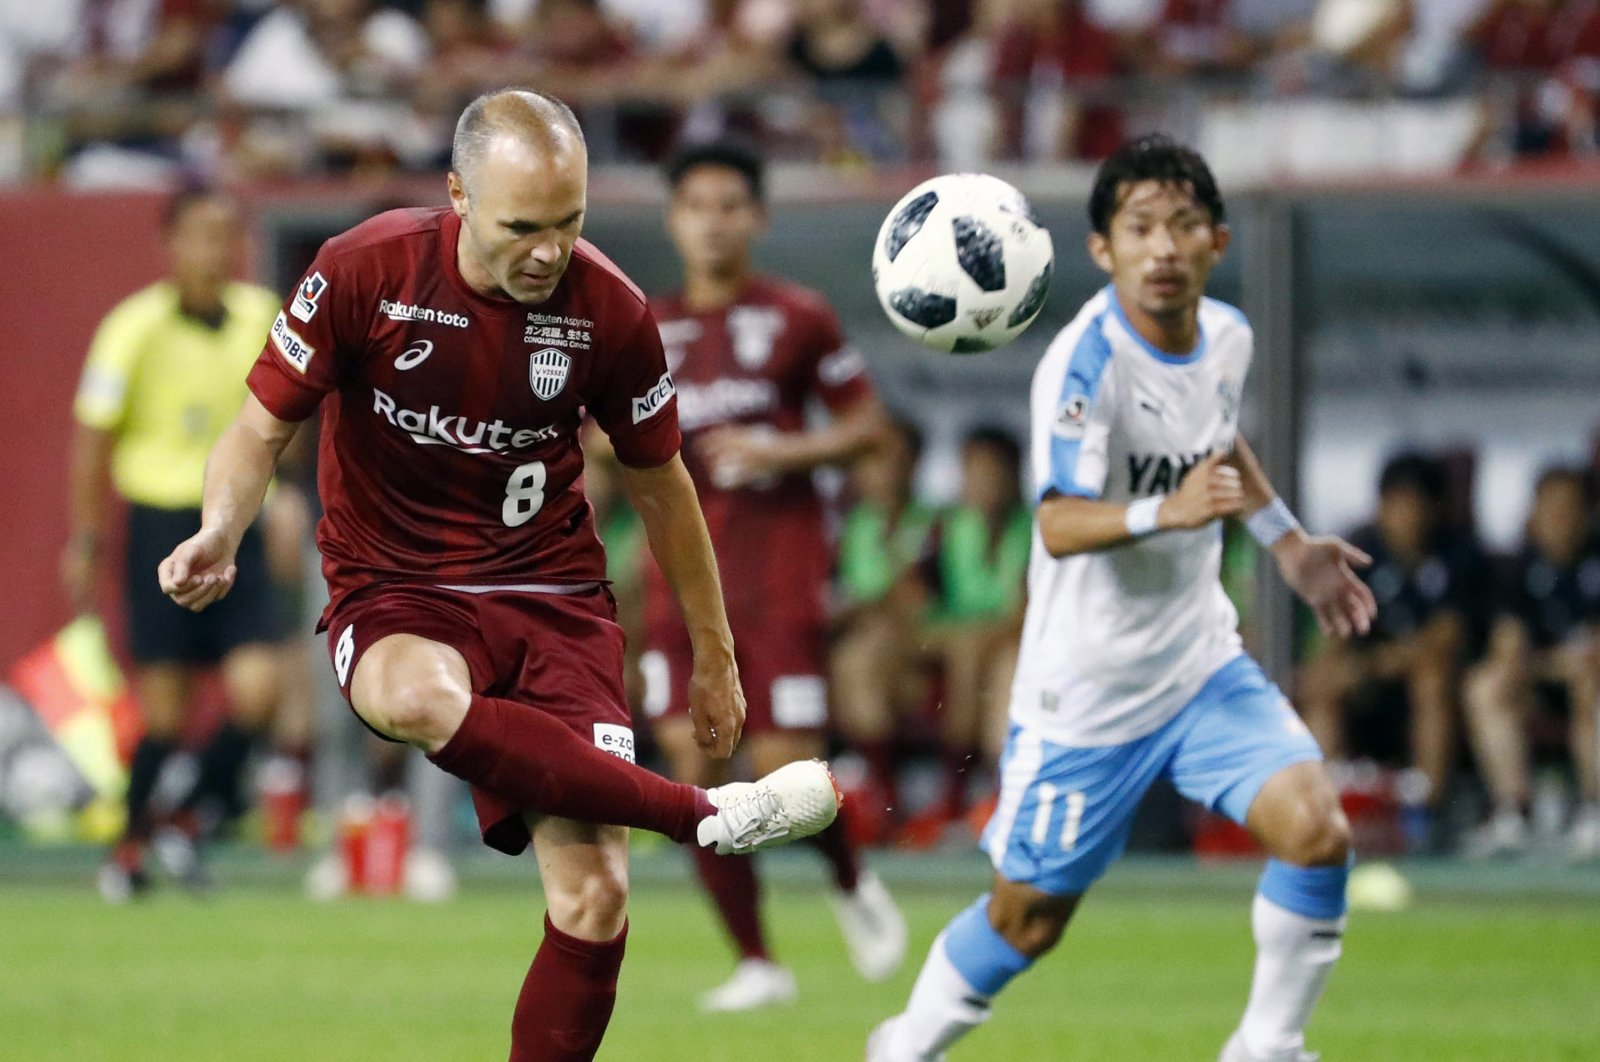 Andres Iniesta controls the ball during a match against Jubil Iwata, in Kobe, Japan, Saturday, August 11, 2018. (AP Photo)